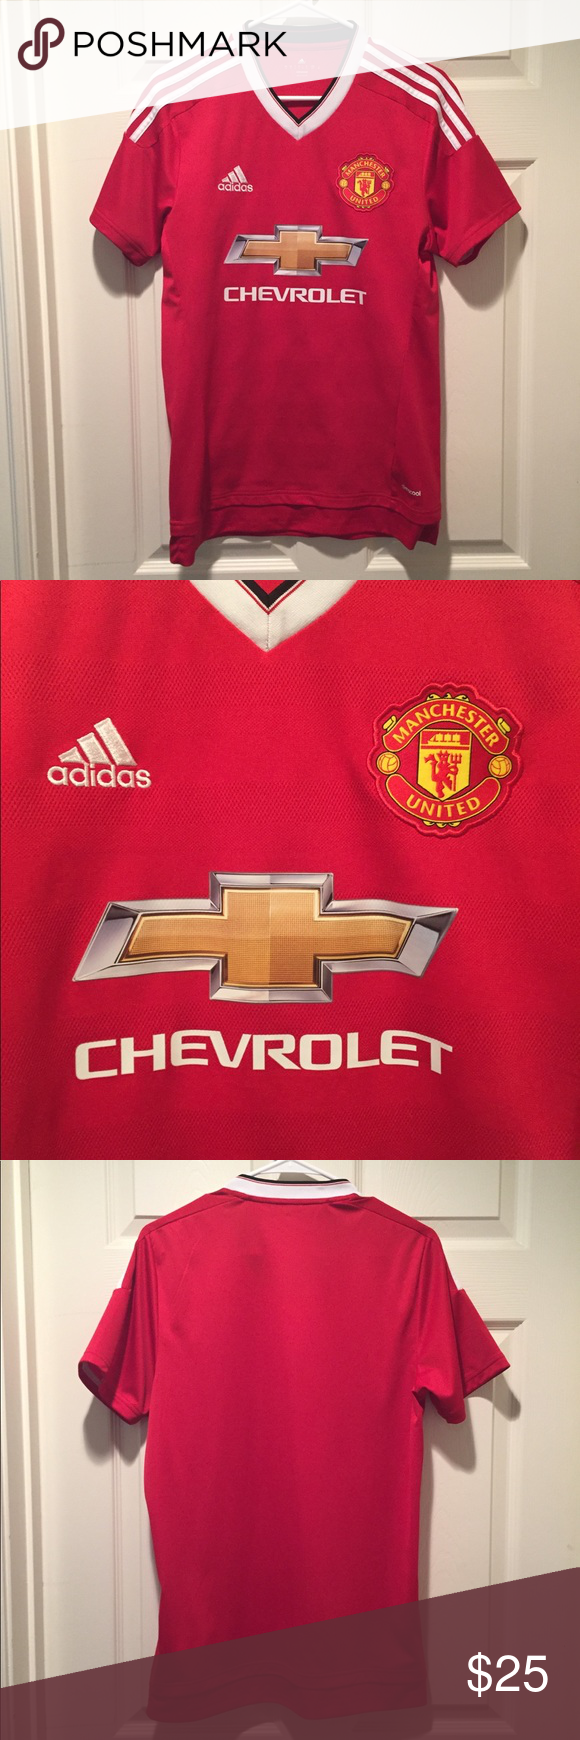 Manchester United Soccer Jersey Manchester United Jersey Chevrolet Sponsor Logo Great Condition There Was Soccer Jersey Manchester United Soccer The Unit